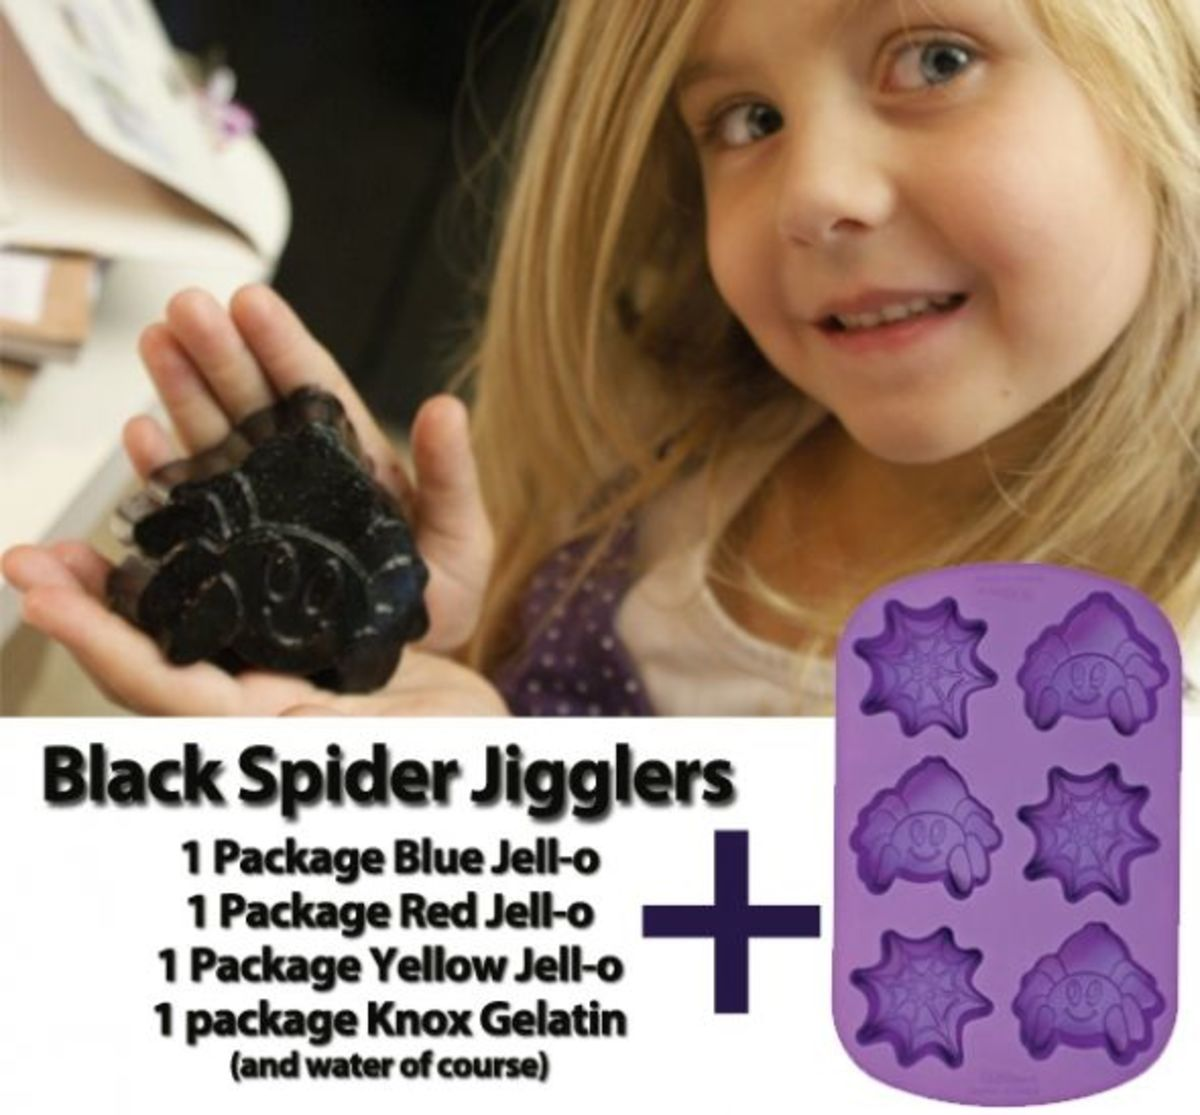 Click to purchase spider and spiderweb silicone molds from Amazon.com.